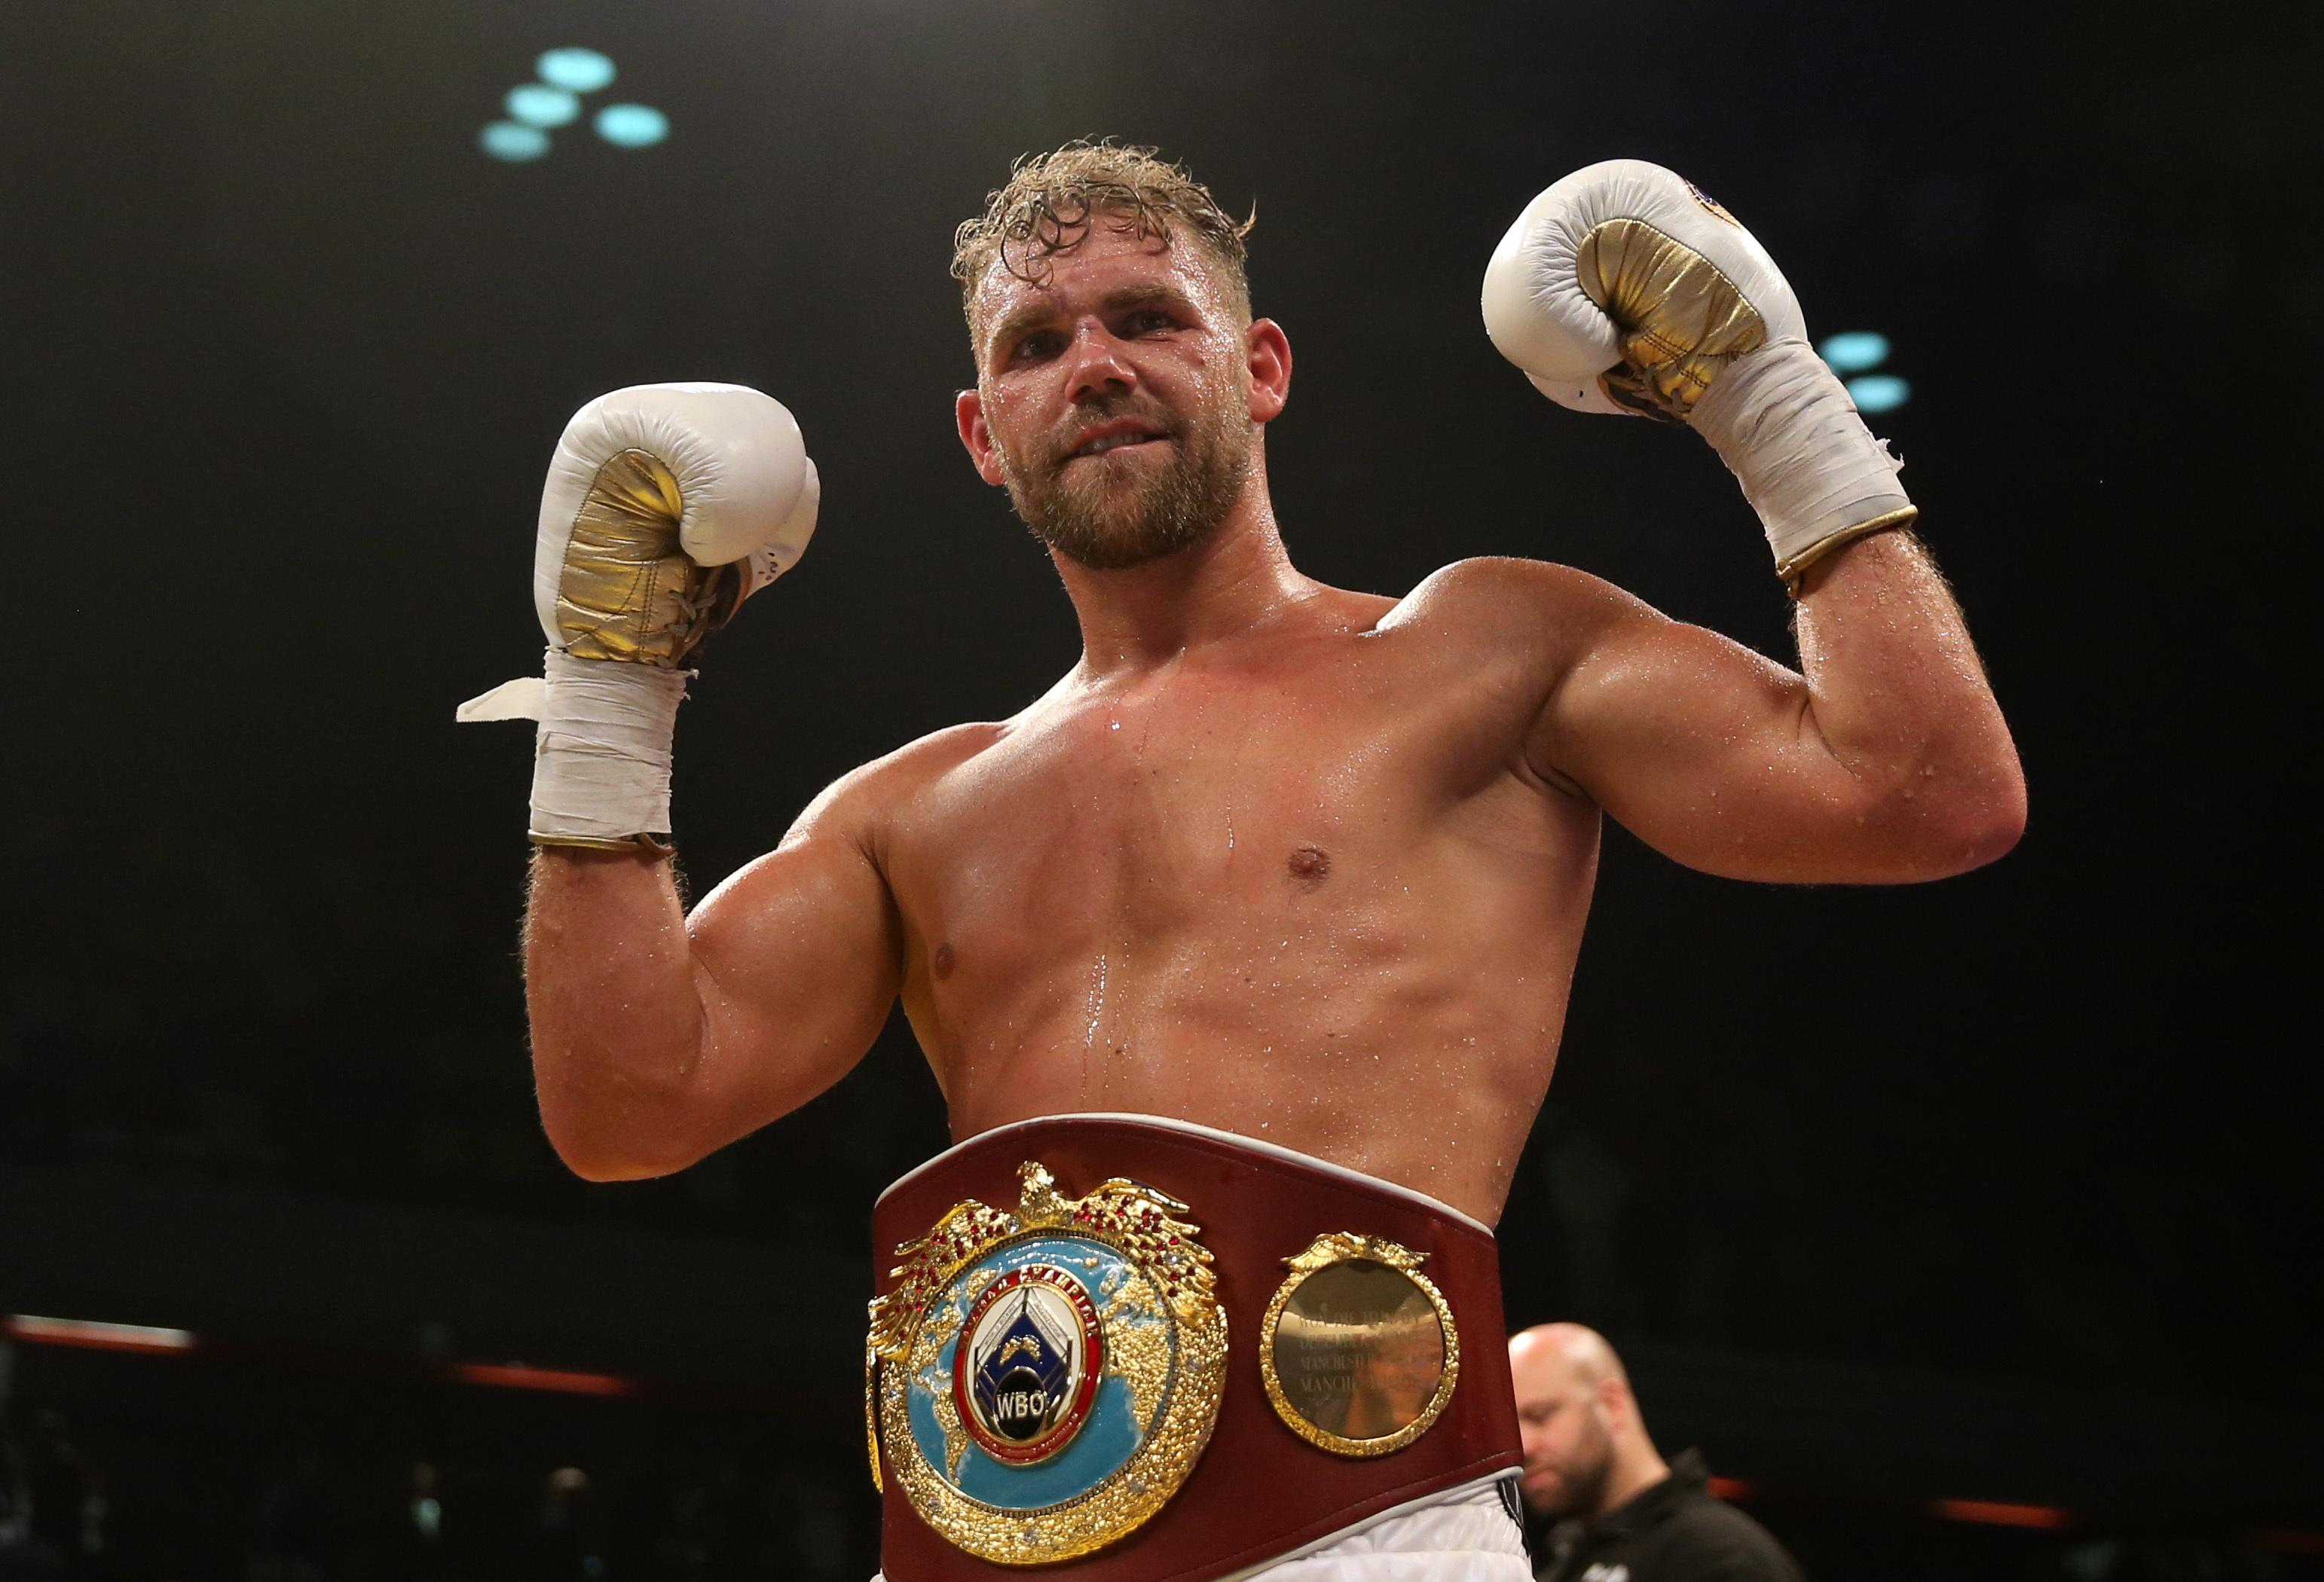 Saunders is WBO middleweight champion - but his licence to box is now under threat after being charged with misconduct